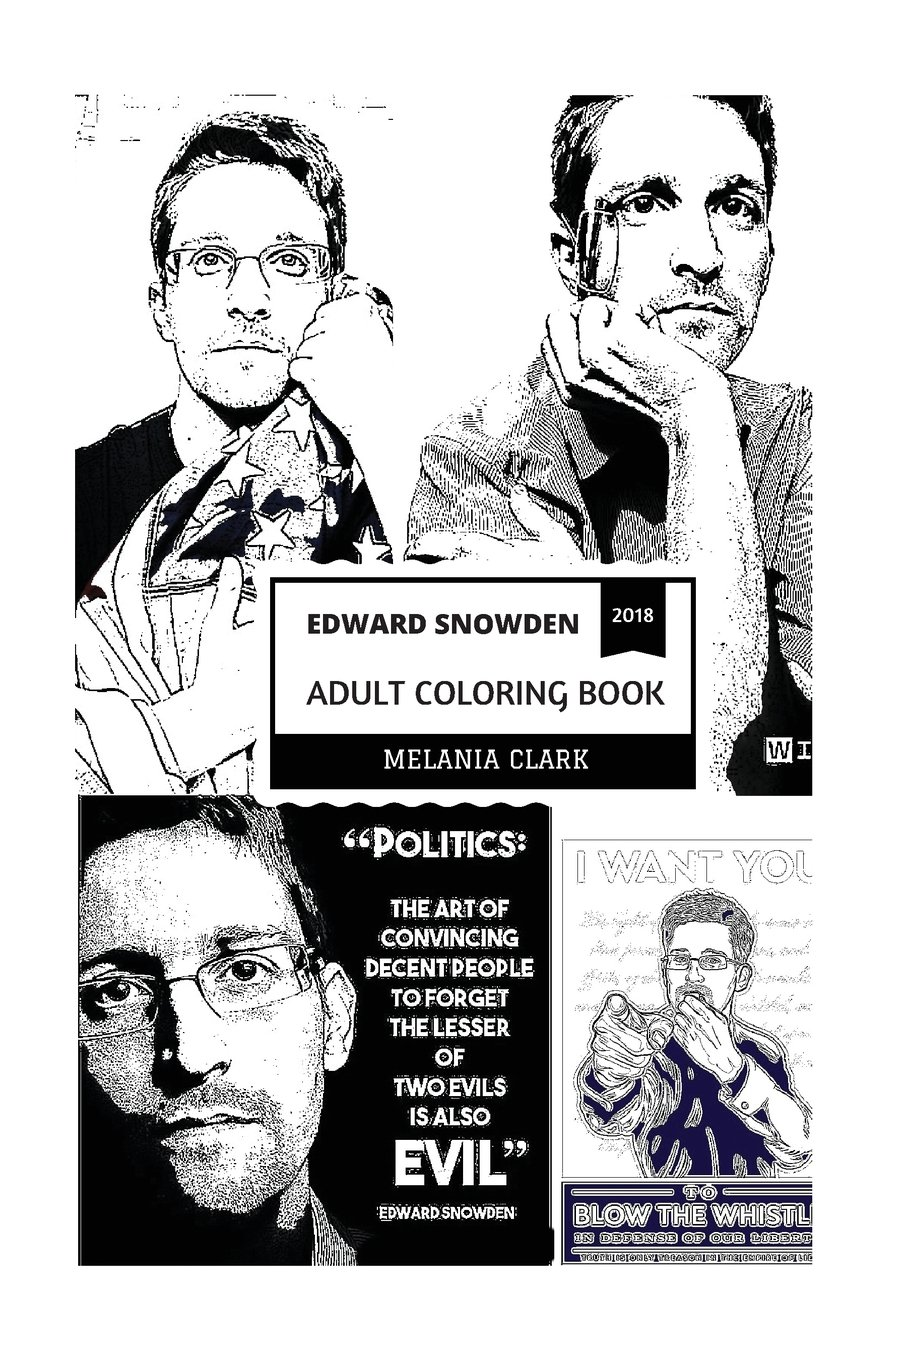 Read Online Edward Snowden Adult Coloring Book: A Whisteblower and Dissident, Privacy Advocate and American Hero, Freedom for All Inspired Adult Coloring Book (Edward Snowden Coloring Books) PDF